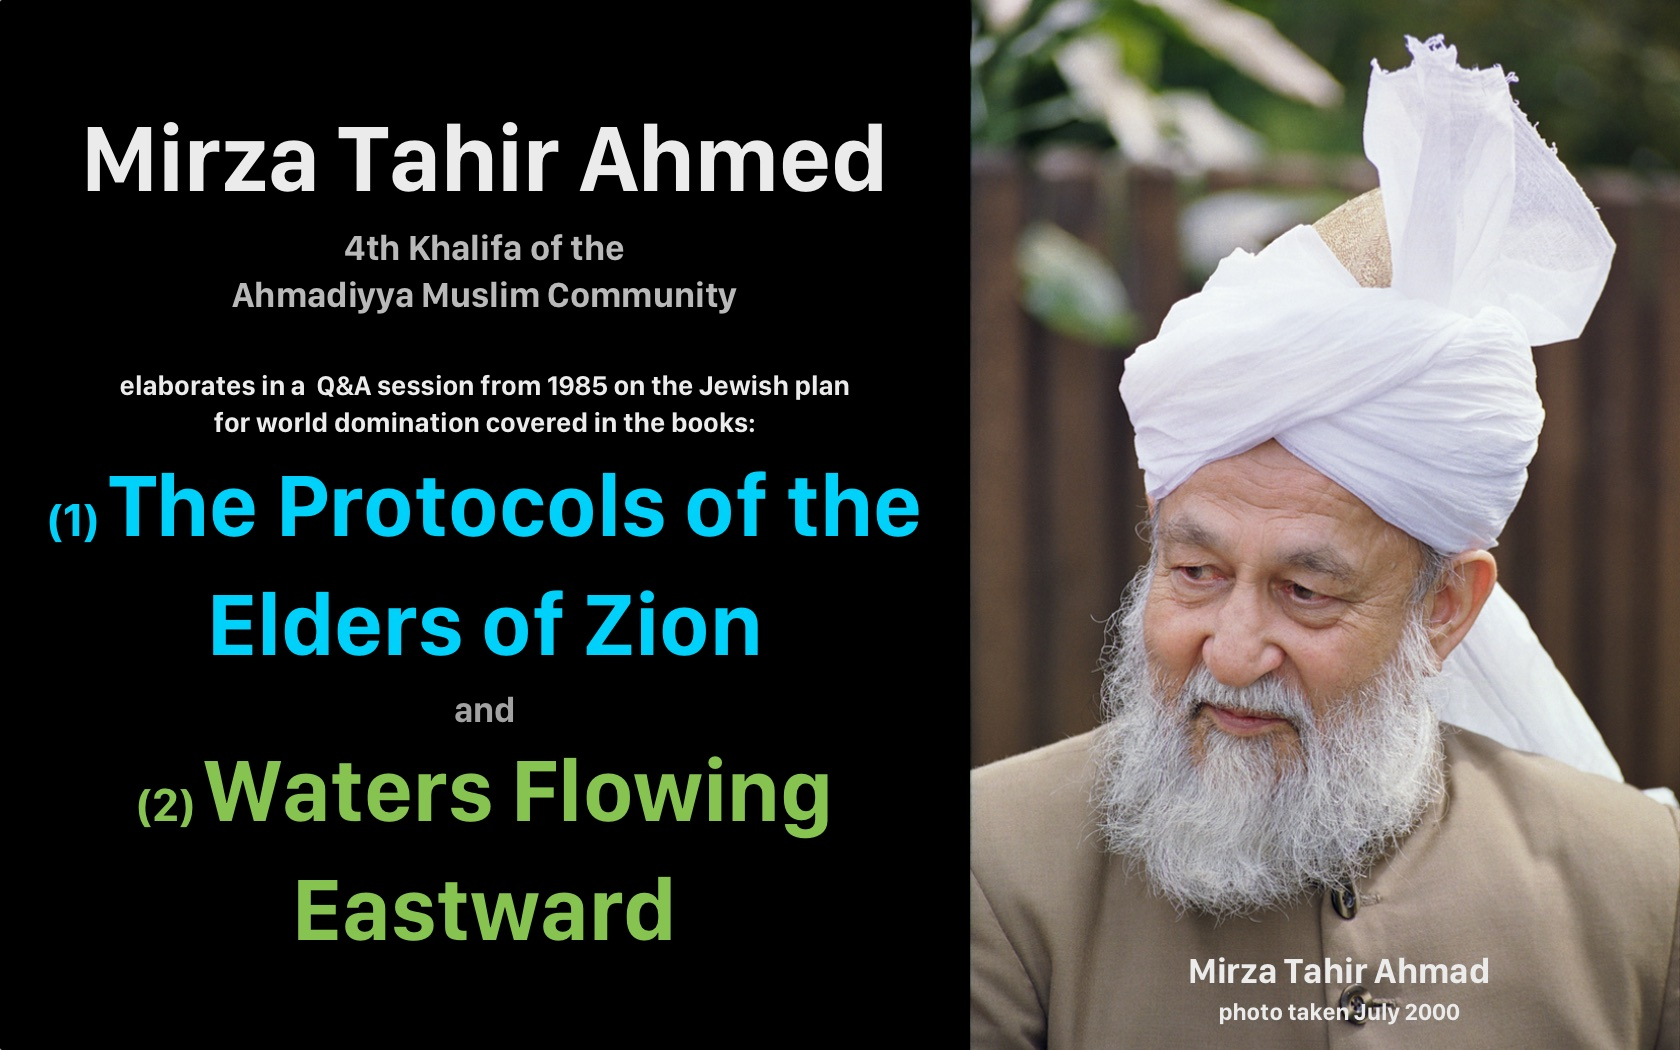 Mirza Tahir Ahmad on the Protocols of the Elders of Zion